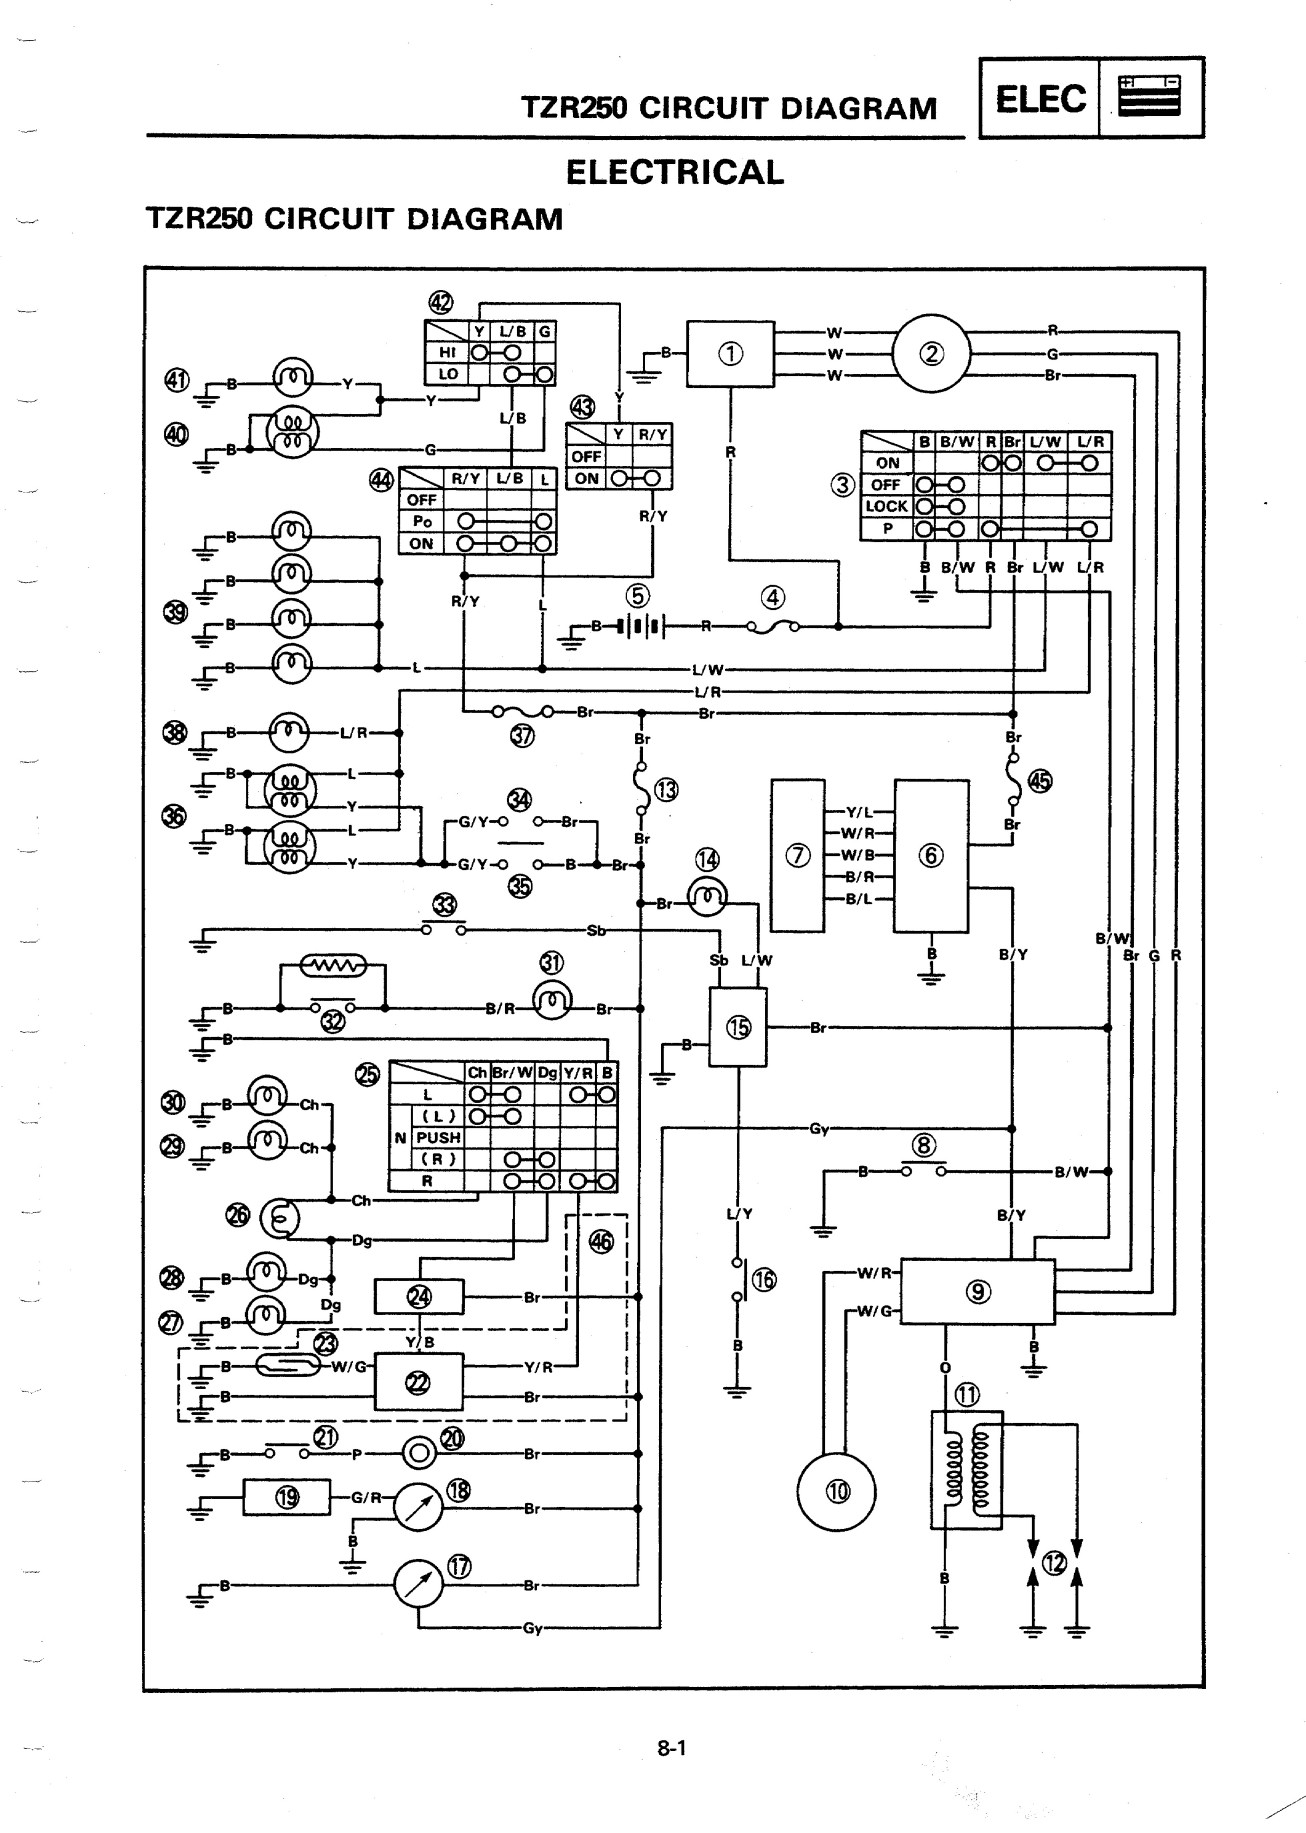 tzr v4 electrics rd500lc wiring diagram and legend